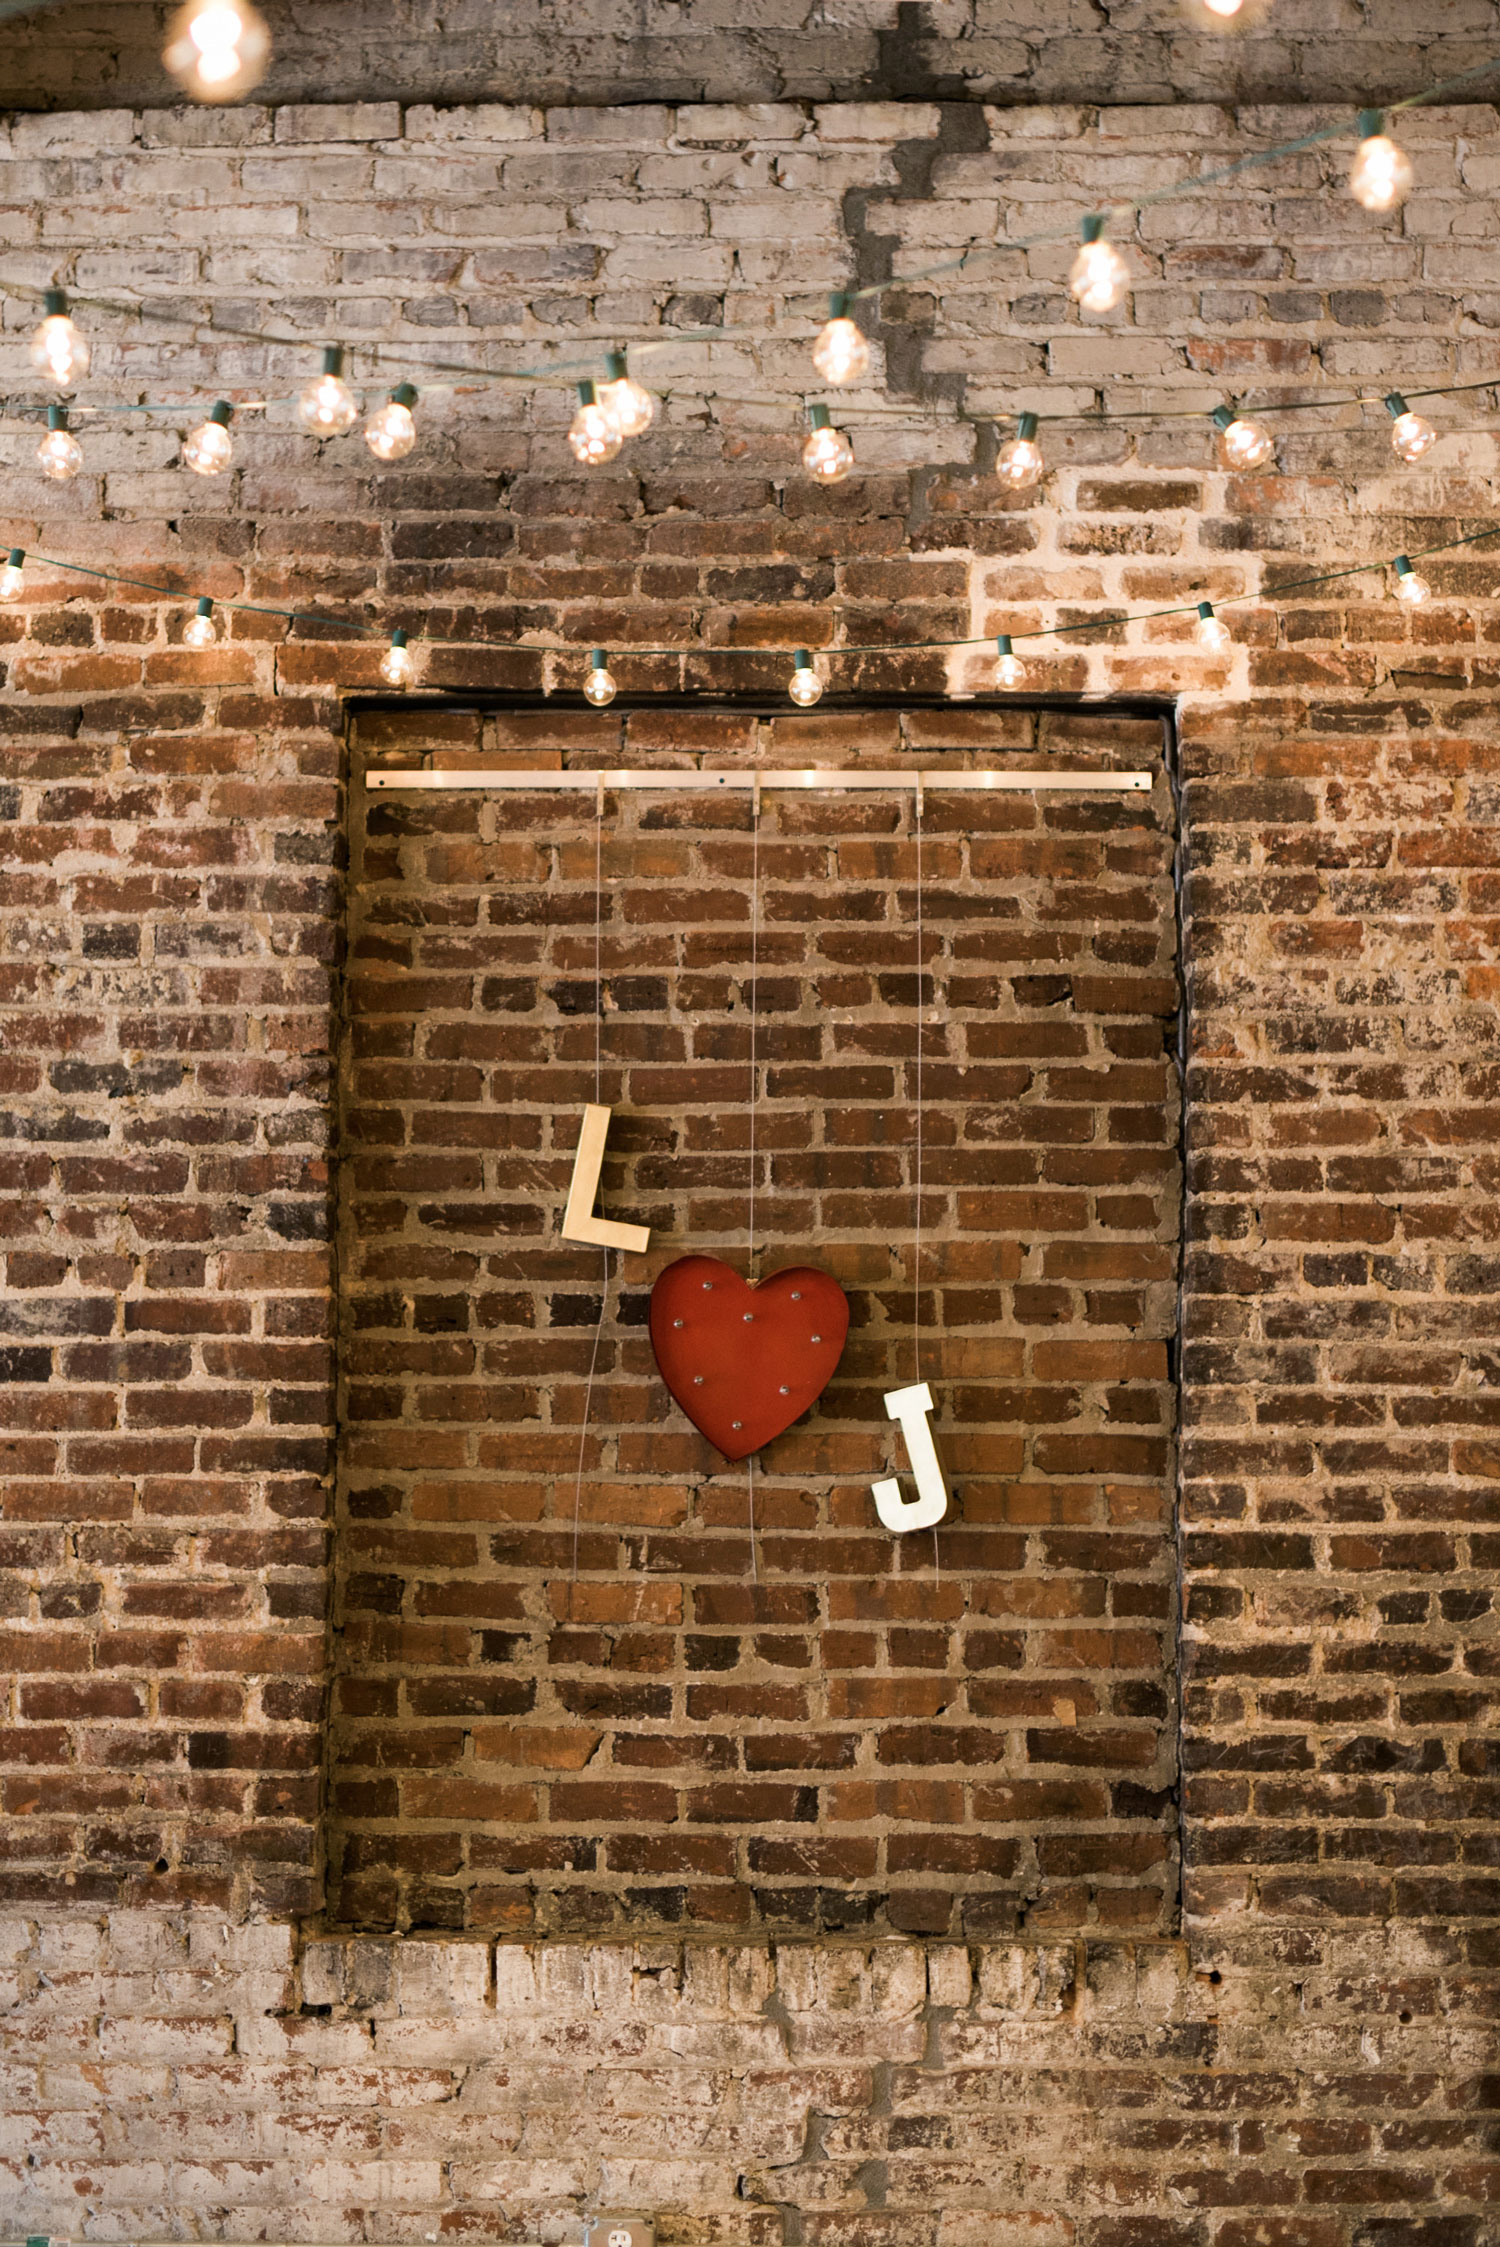 l heart j initials on brick wall